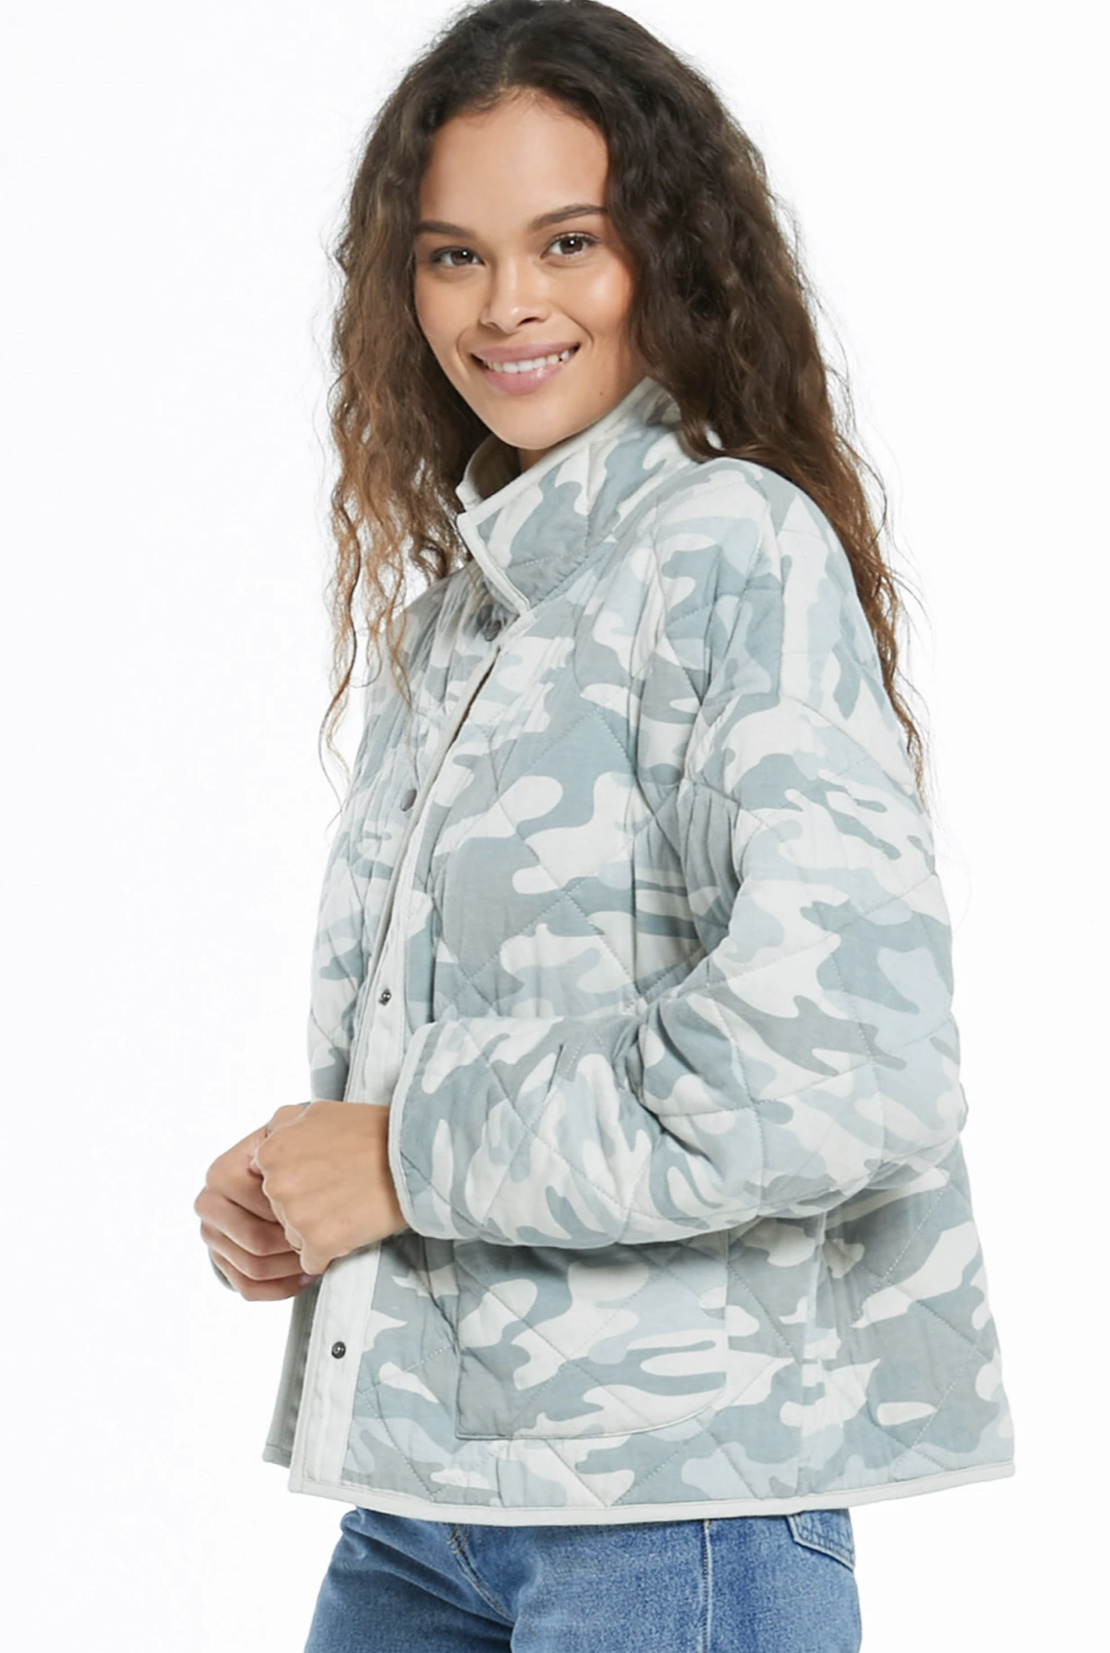 Z Supply Maya Quilted Jacket - Dusty Sage Camo